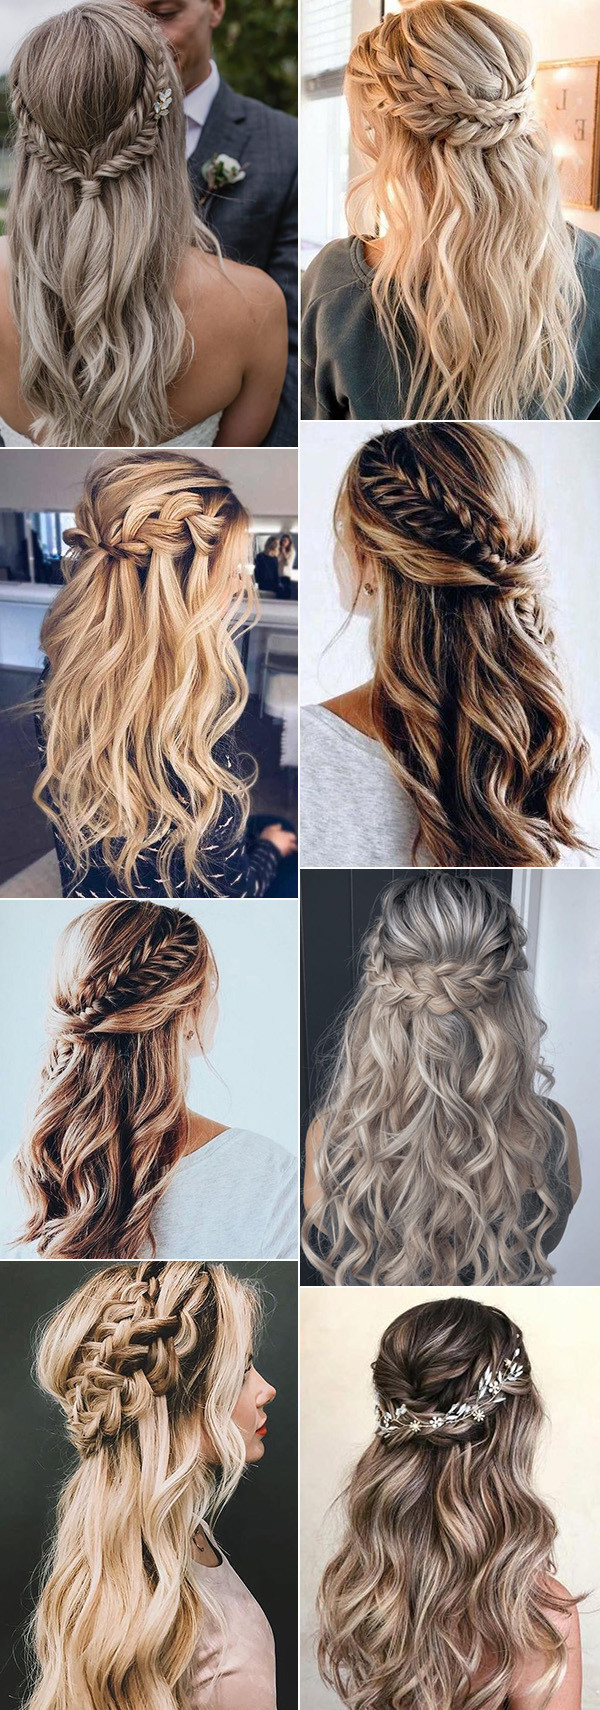 half up half down braided wedding hairstyles for 2020